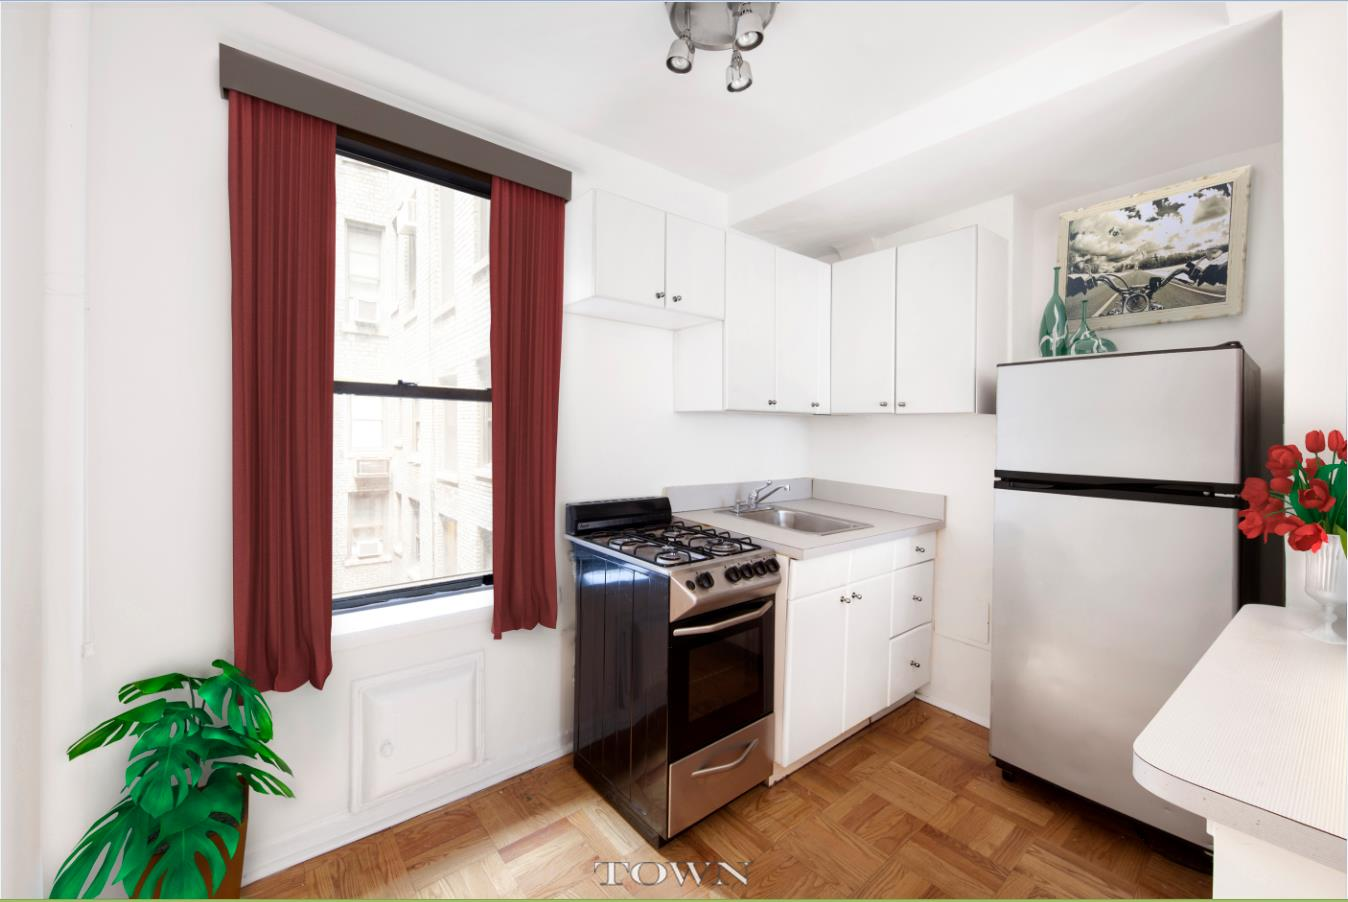 Additional photo for property listing at 226-230 East 12th Street, #3-J 226-230 East 12th Street New York, New York 10003 United States